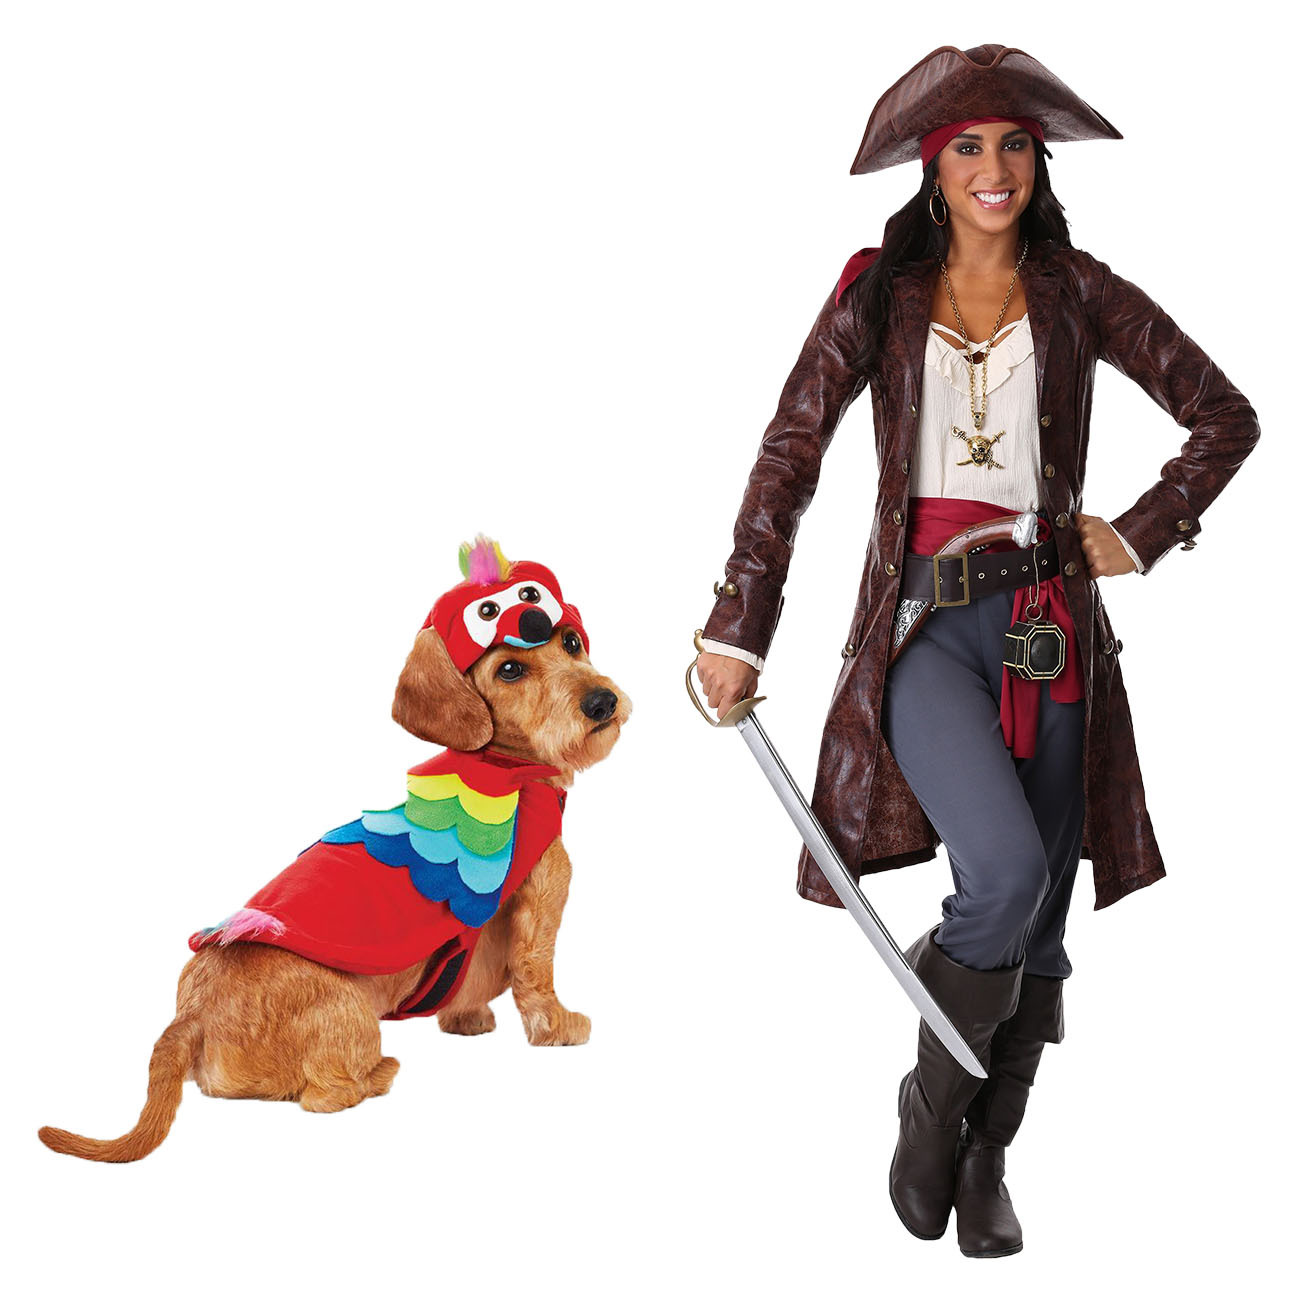 parrot dog costume and adult pirate costume for Halloween